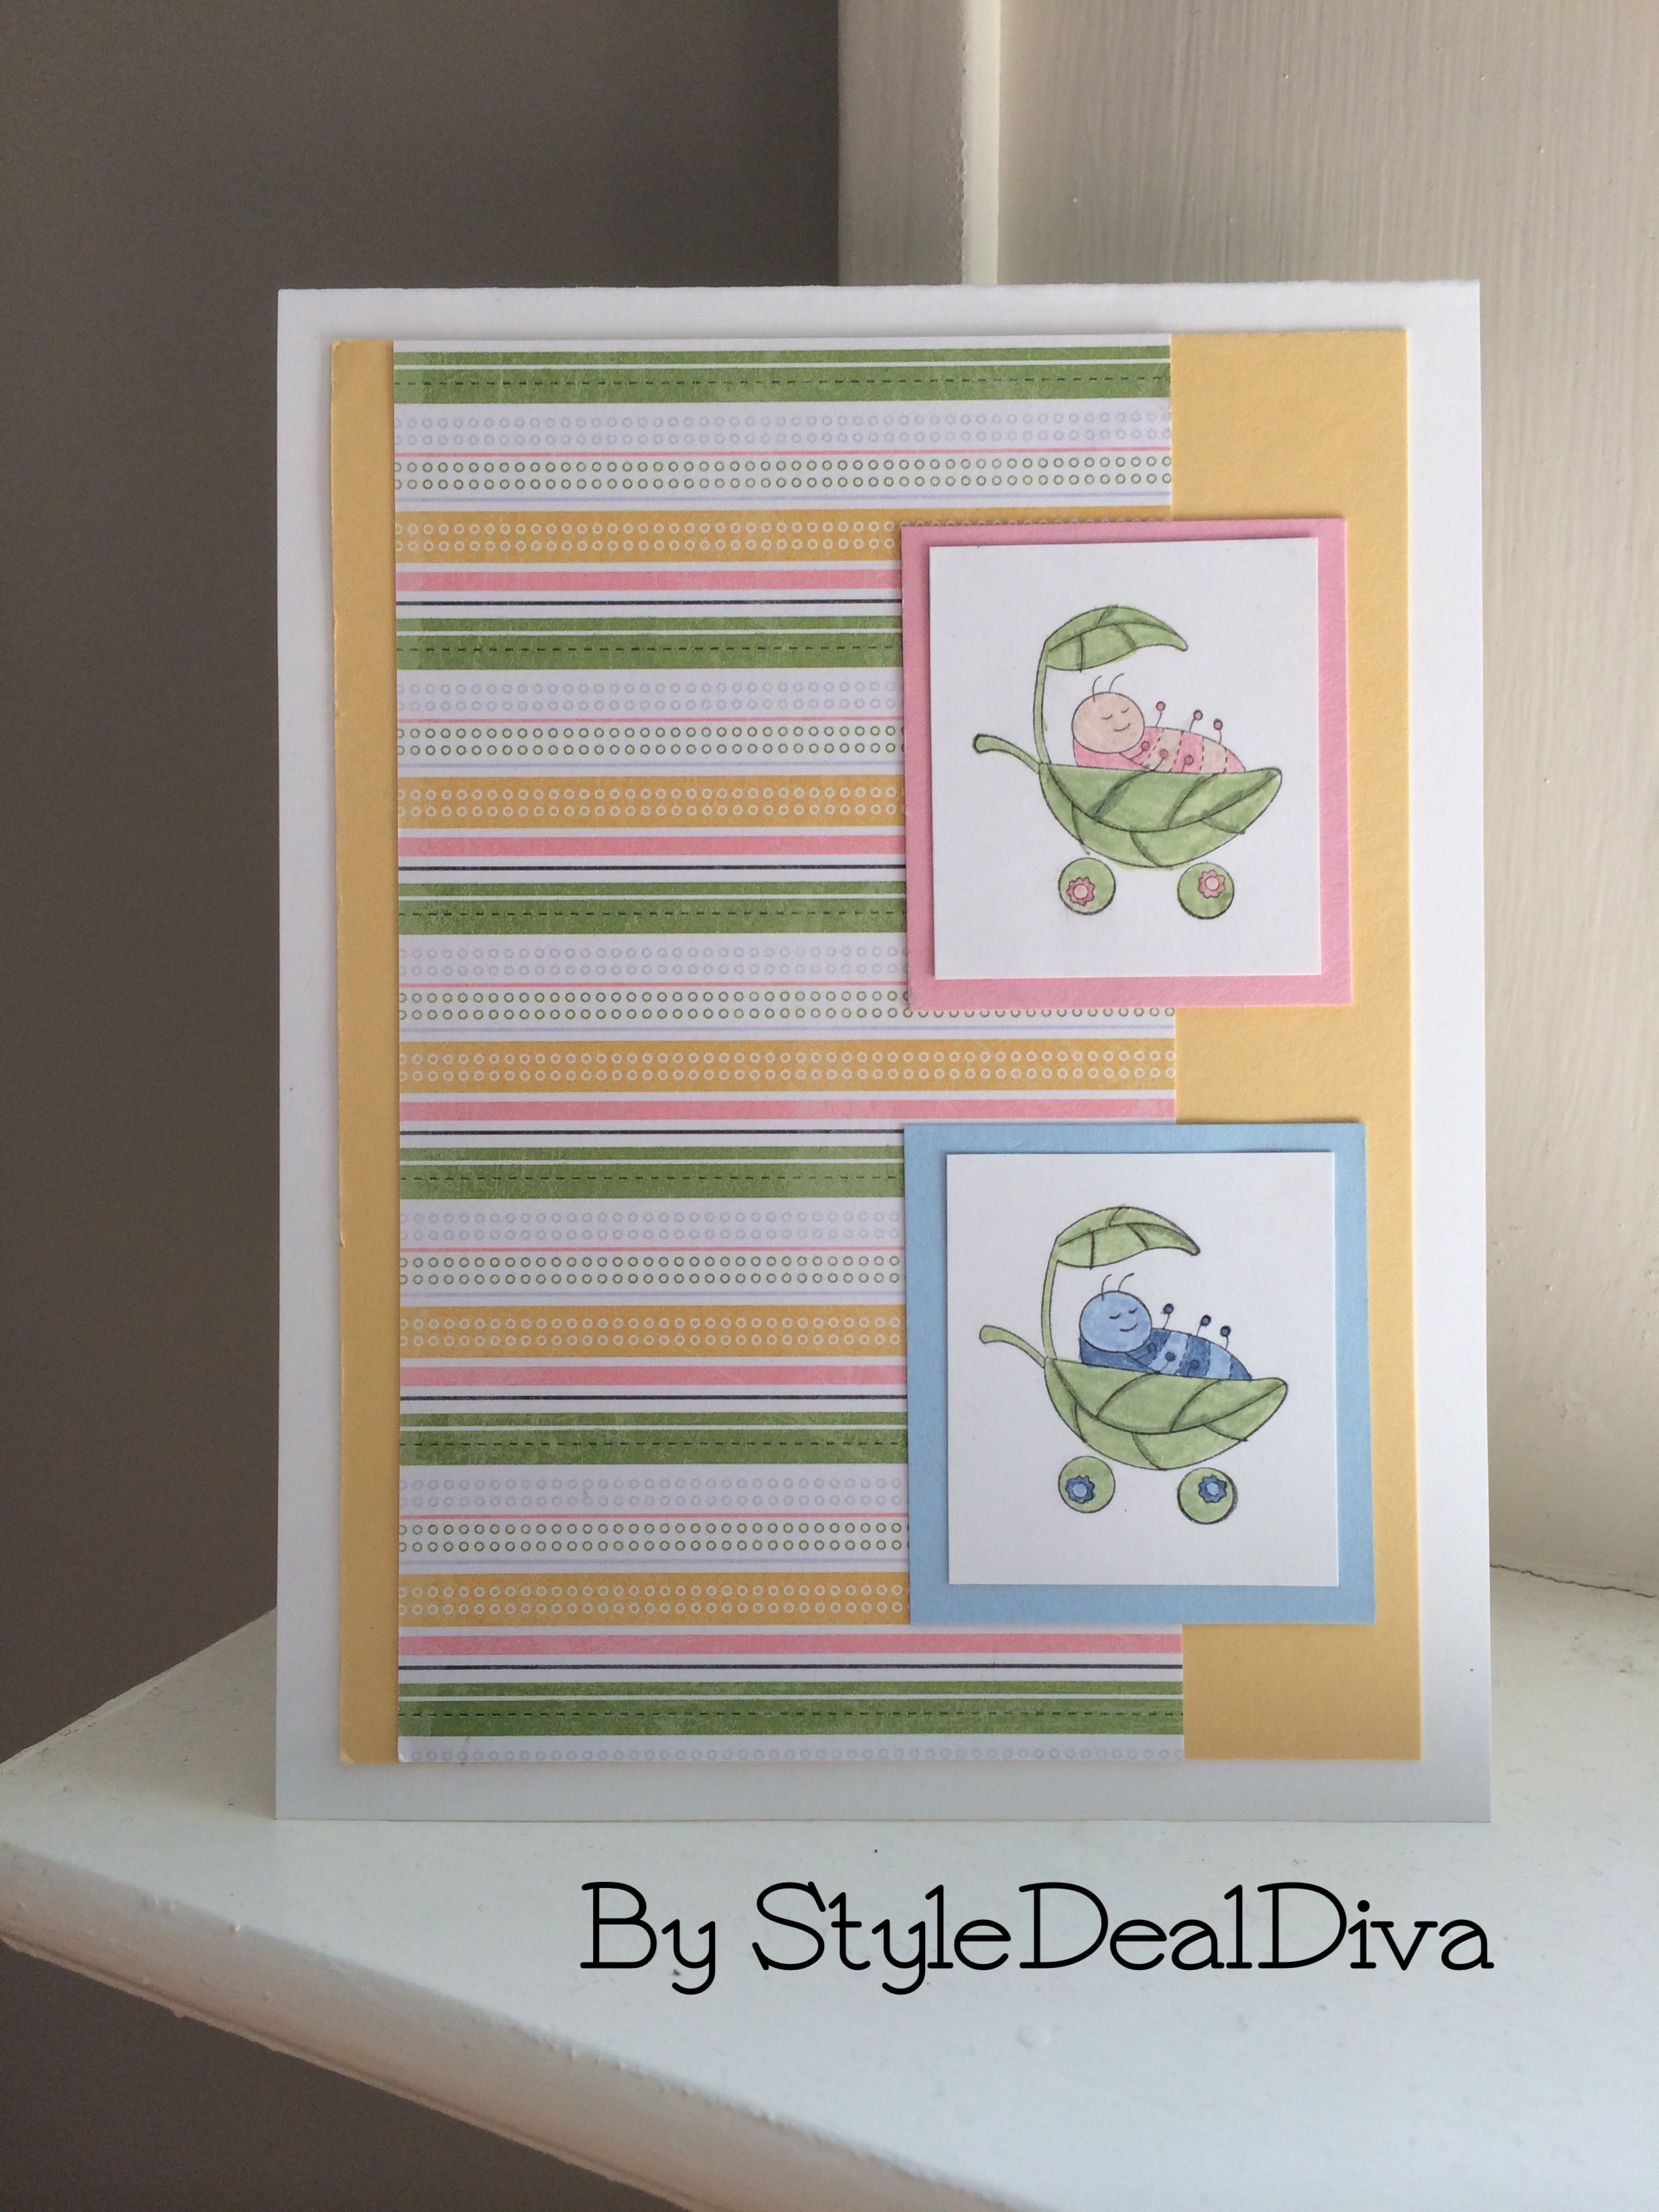 Card for a set of newborn baby twins; a boy and girl. Made with Stampin' Up!'s Love Bug set. Using SU colors Certainly Celery, Mellow Moss, Bashful Blue, Blush Blossom, and Pretty in Pink.